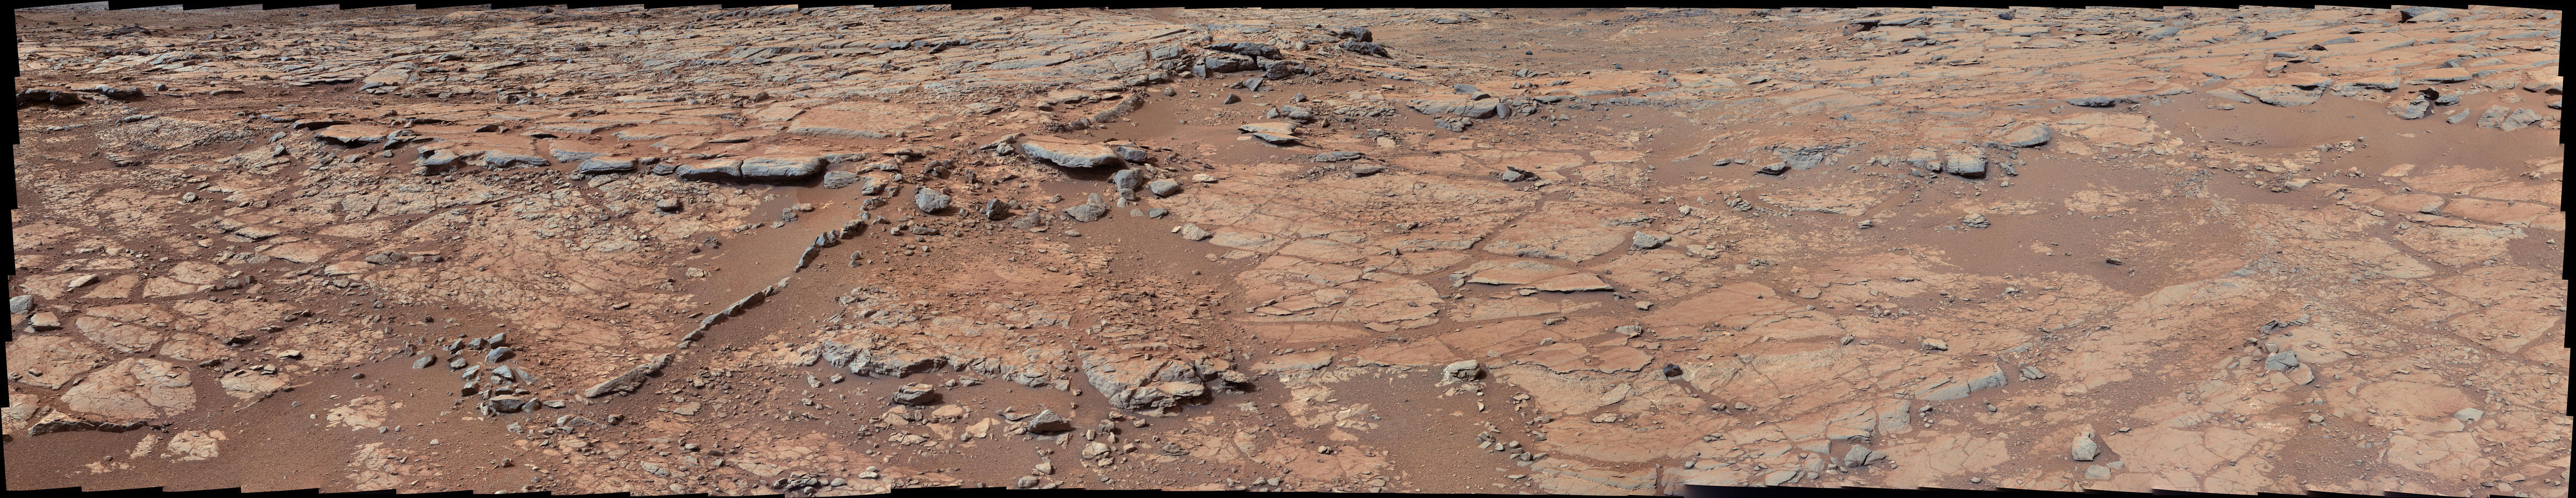 "From a position in the shallow ""Yellowknife Bay"" depression, NASA's Mars rover Curiosity used its right Mast Camera (Mastcam) to take the telephoto images combined into this panorama of geological diversity."